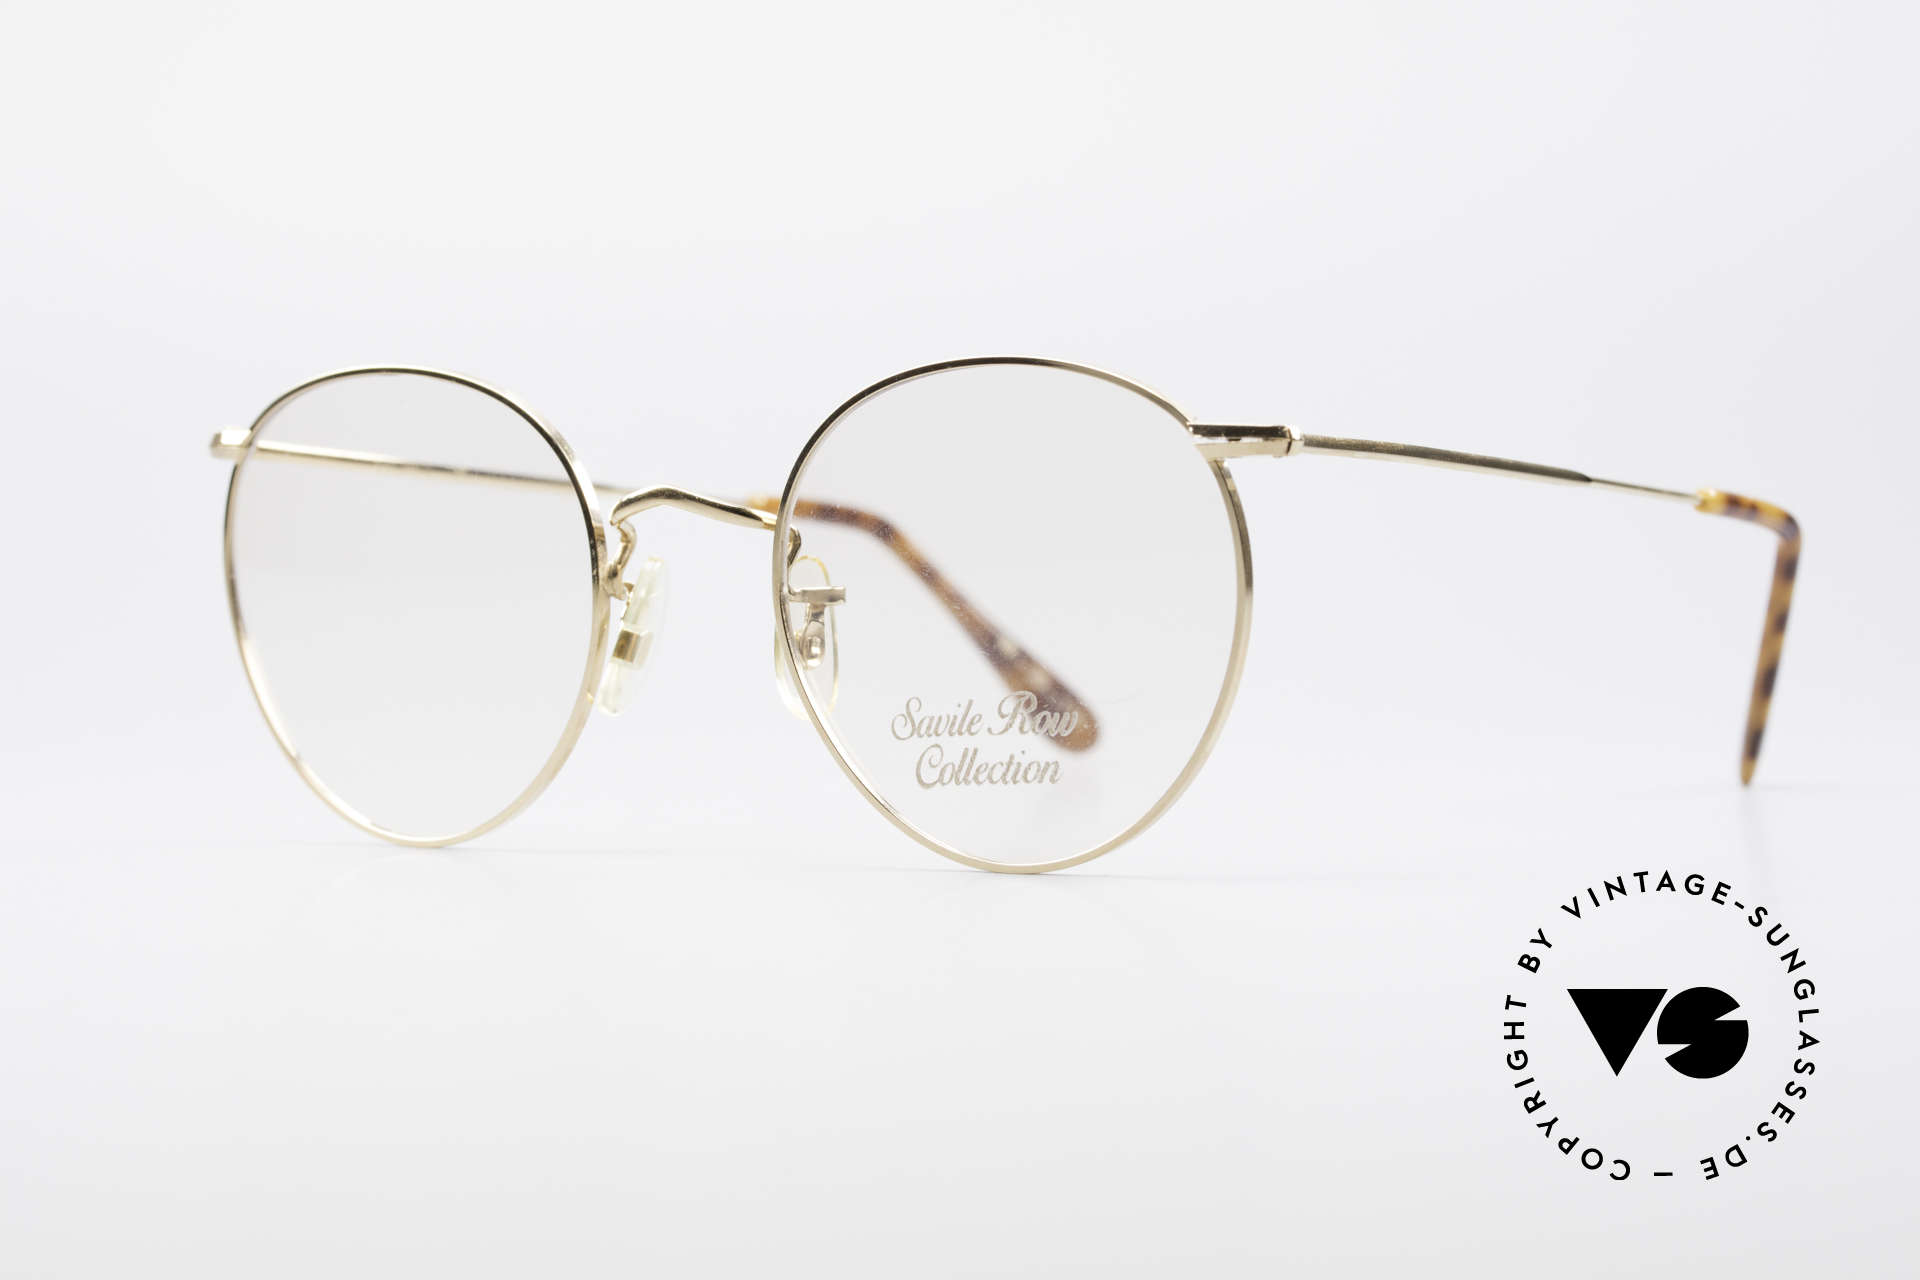 Savile Row Panto 49/20 John Lennon Vintage Glasses, finest manufacturing (gold-filled); made in the UK, Made for Men